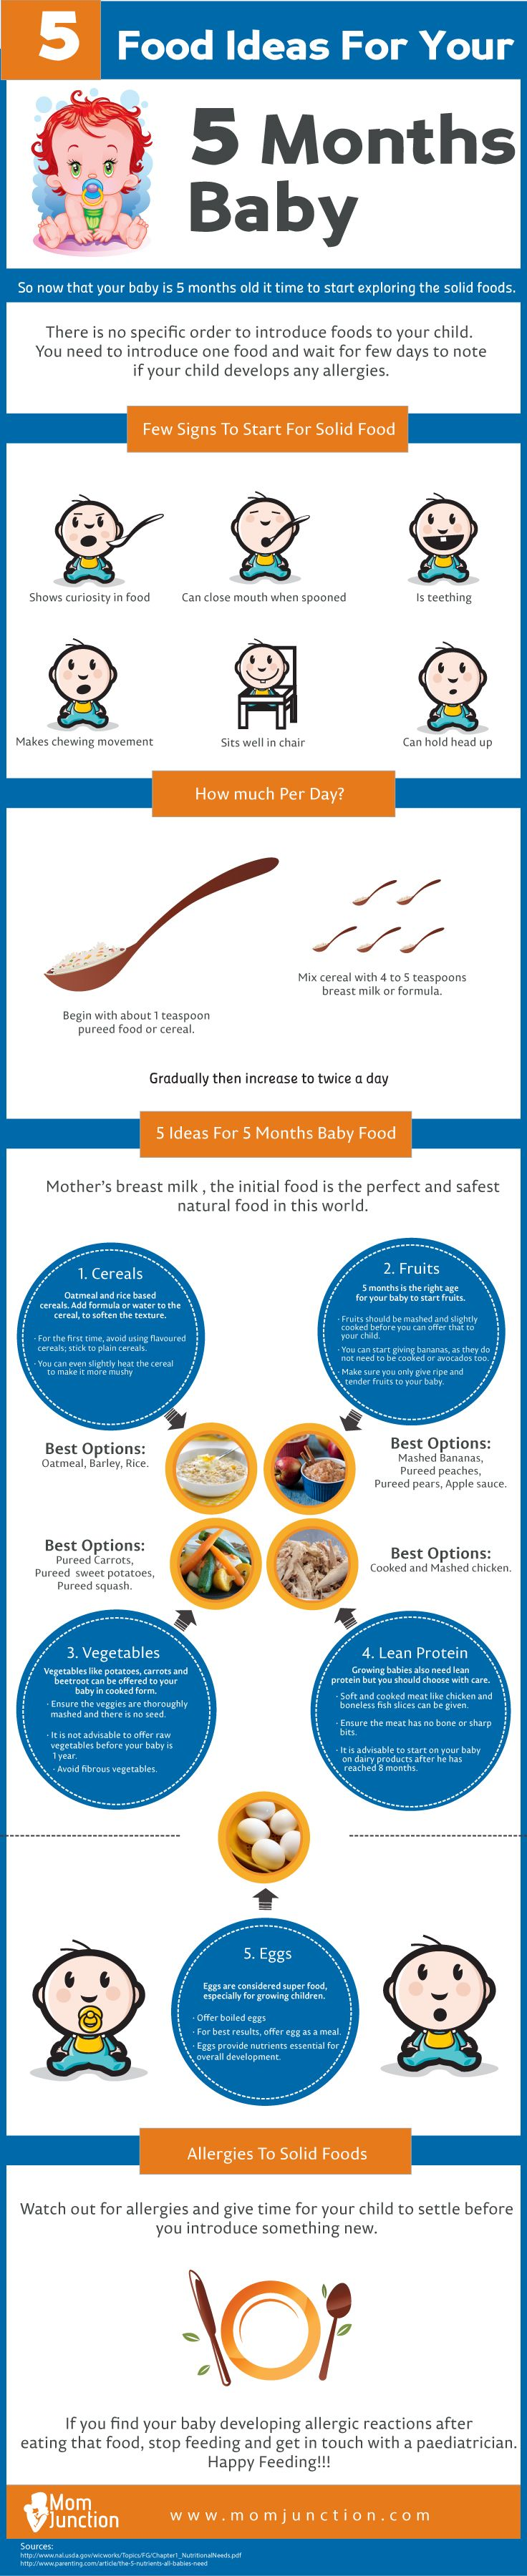 Top 5 Ideas For 5 Months Baby Food Baby Food Recipes 5 Month Baby Baby Month By Month